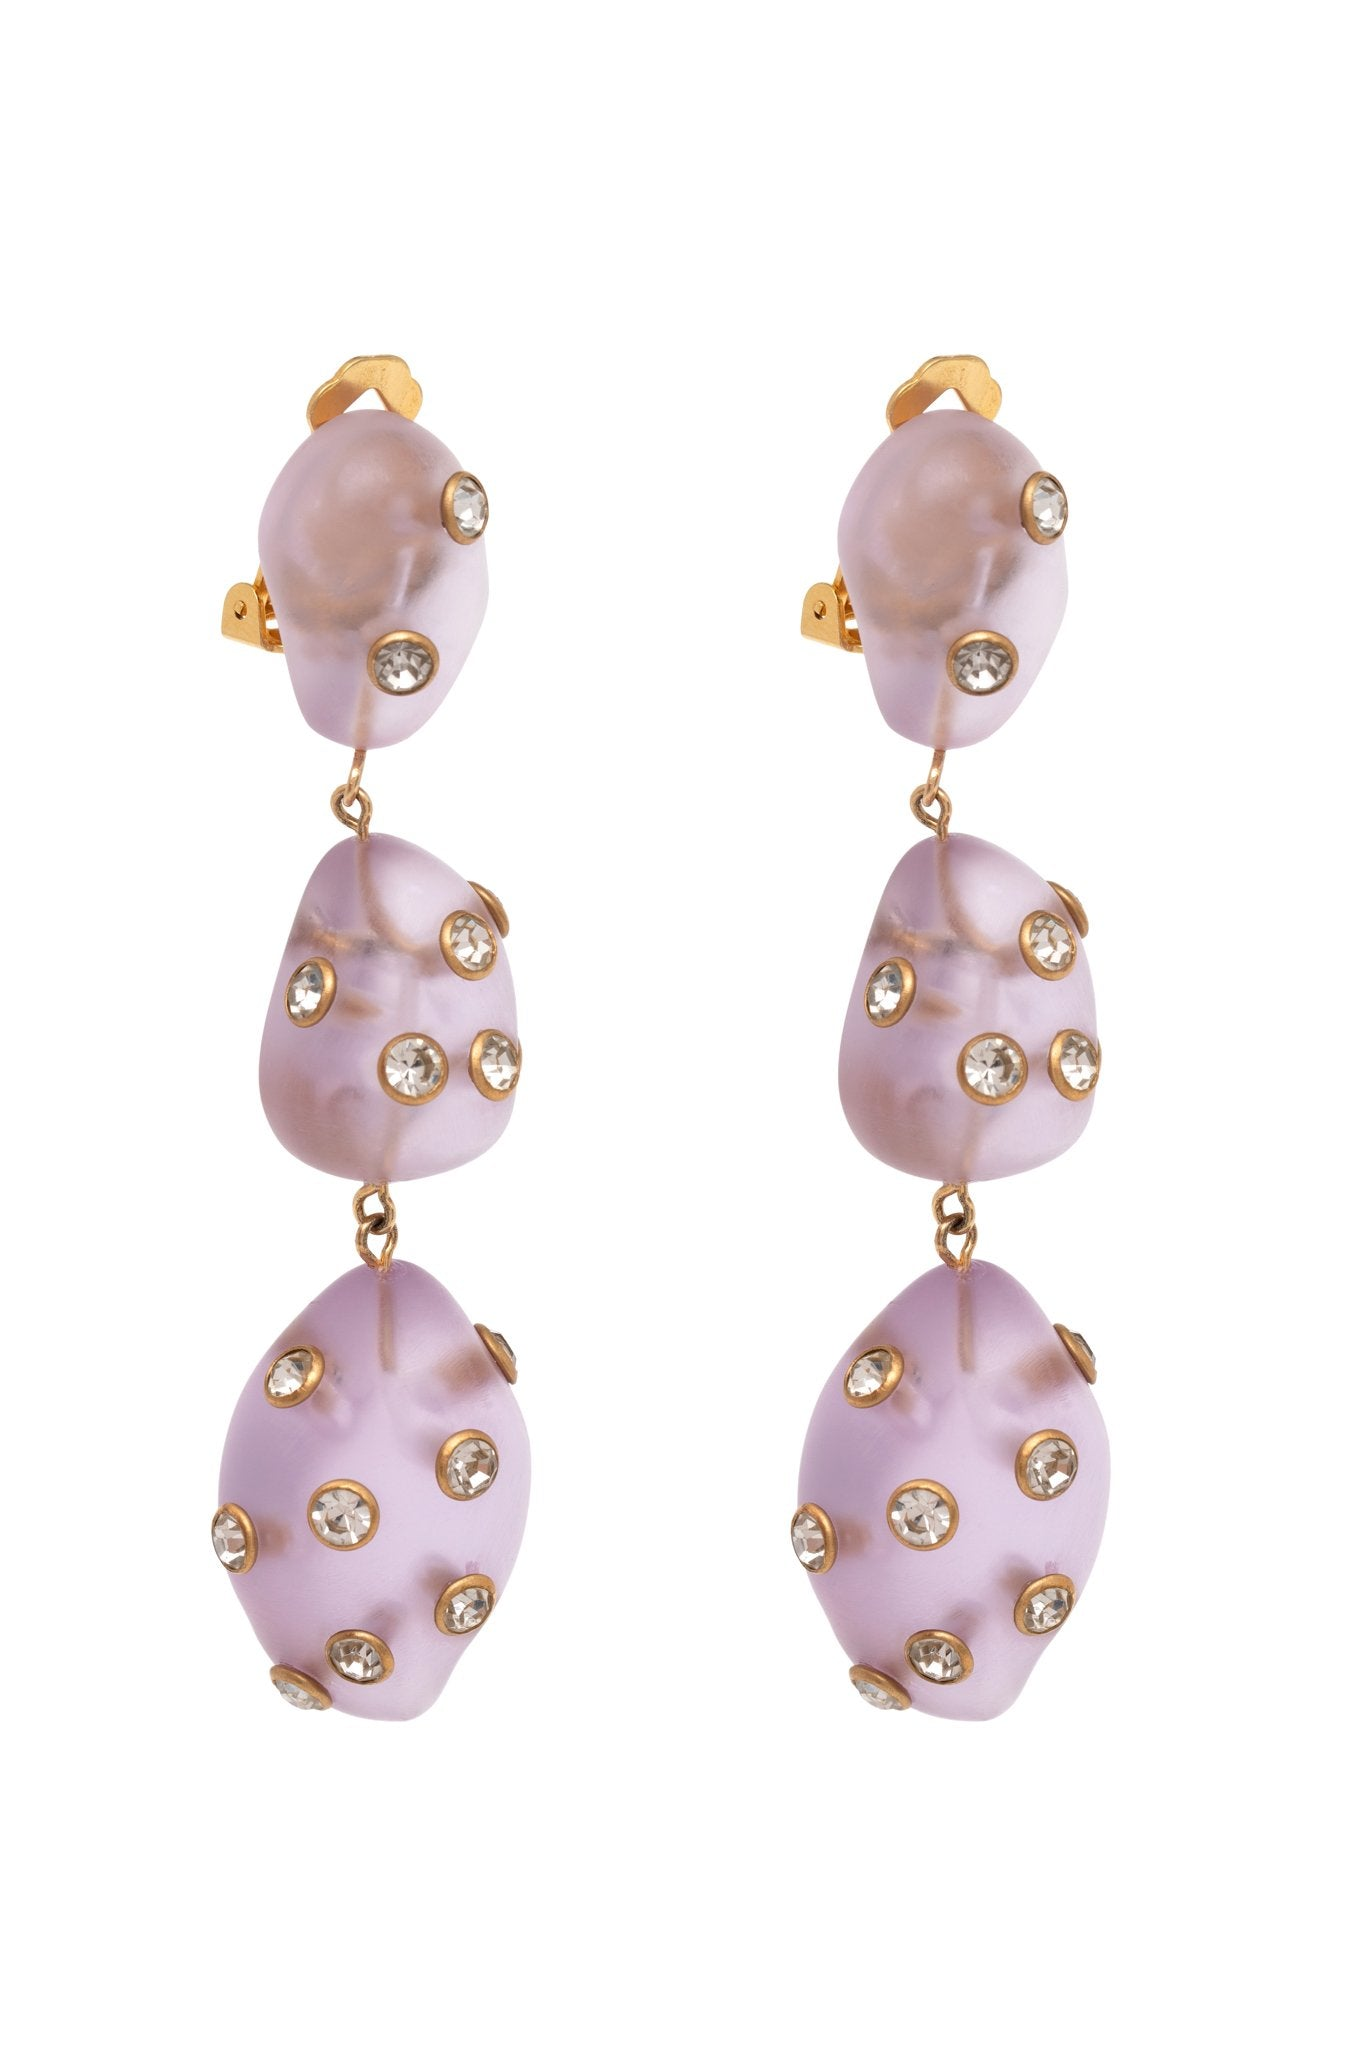 LILAC ARTSY EARRINGS